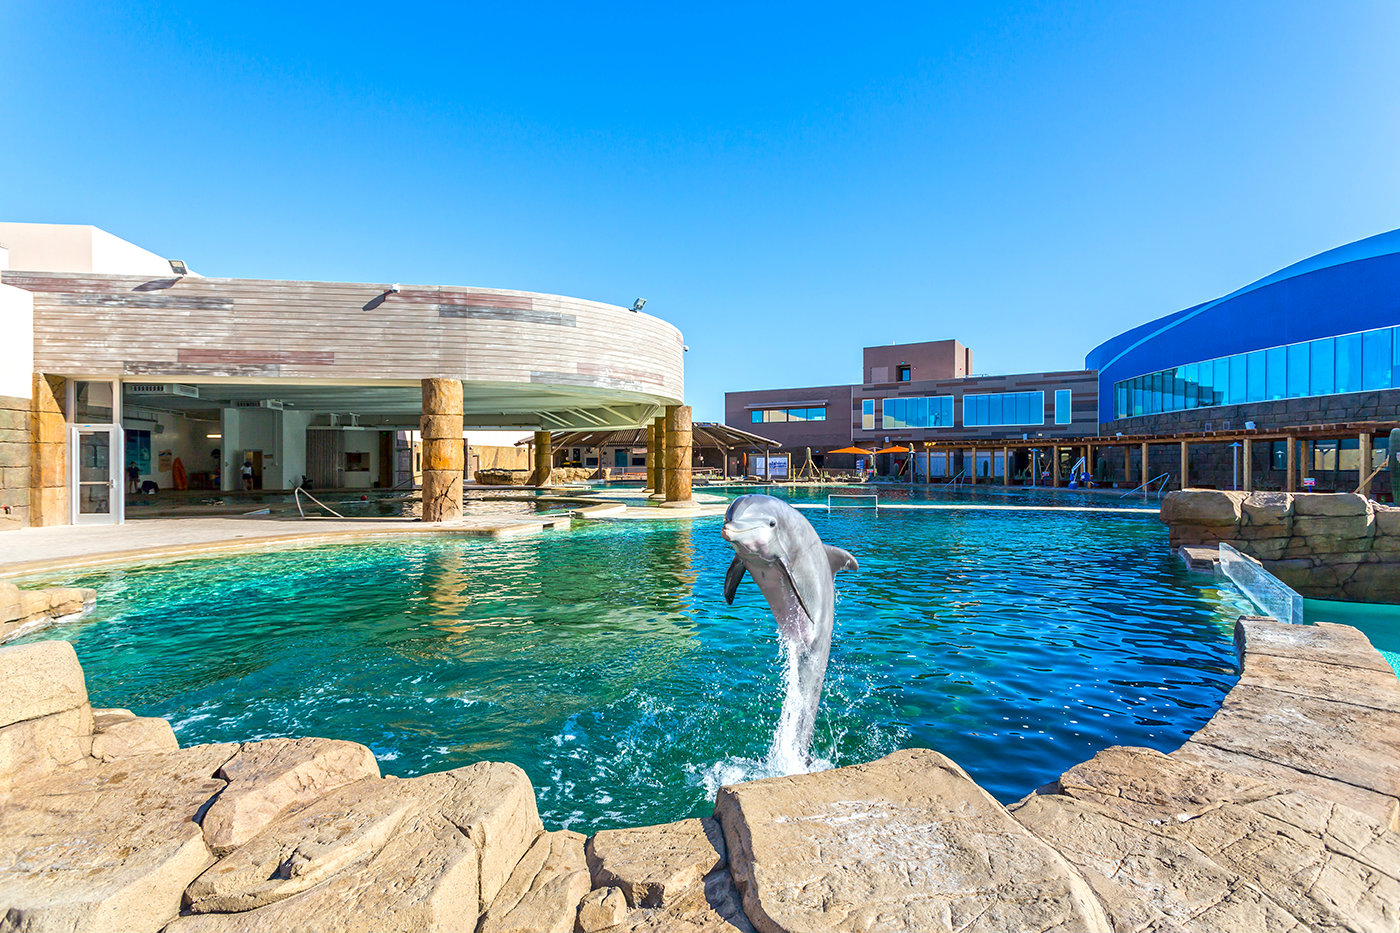 People and Dolphins Can Swim in This Pool- Aquatics ...